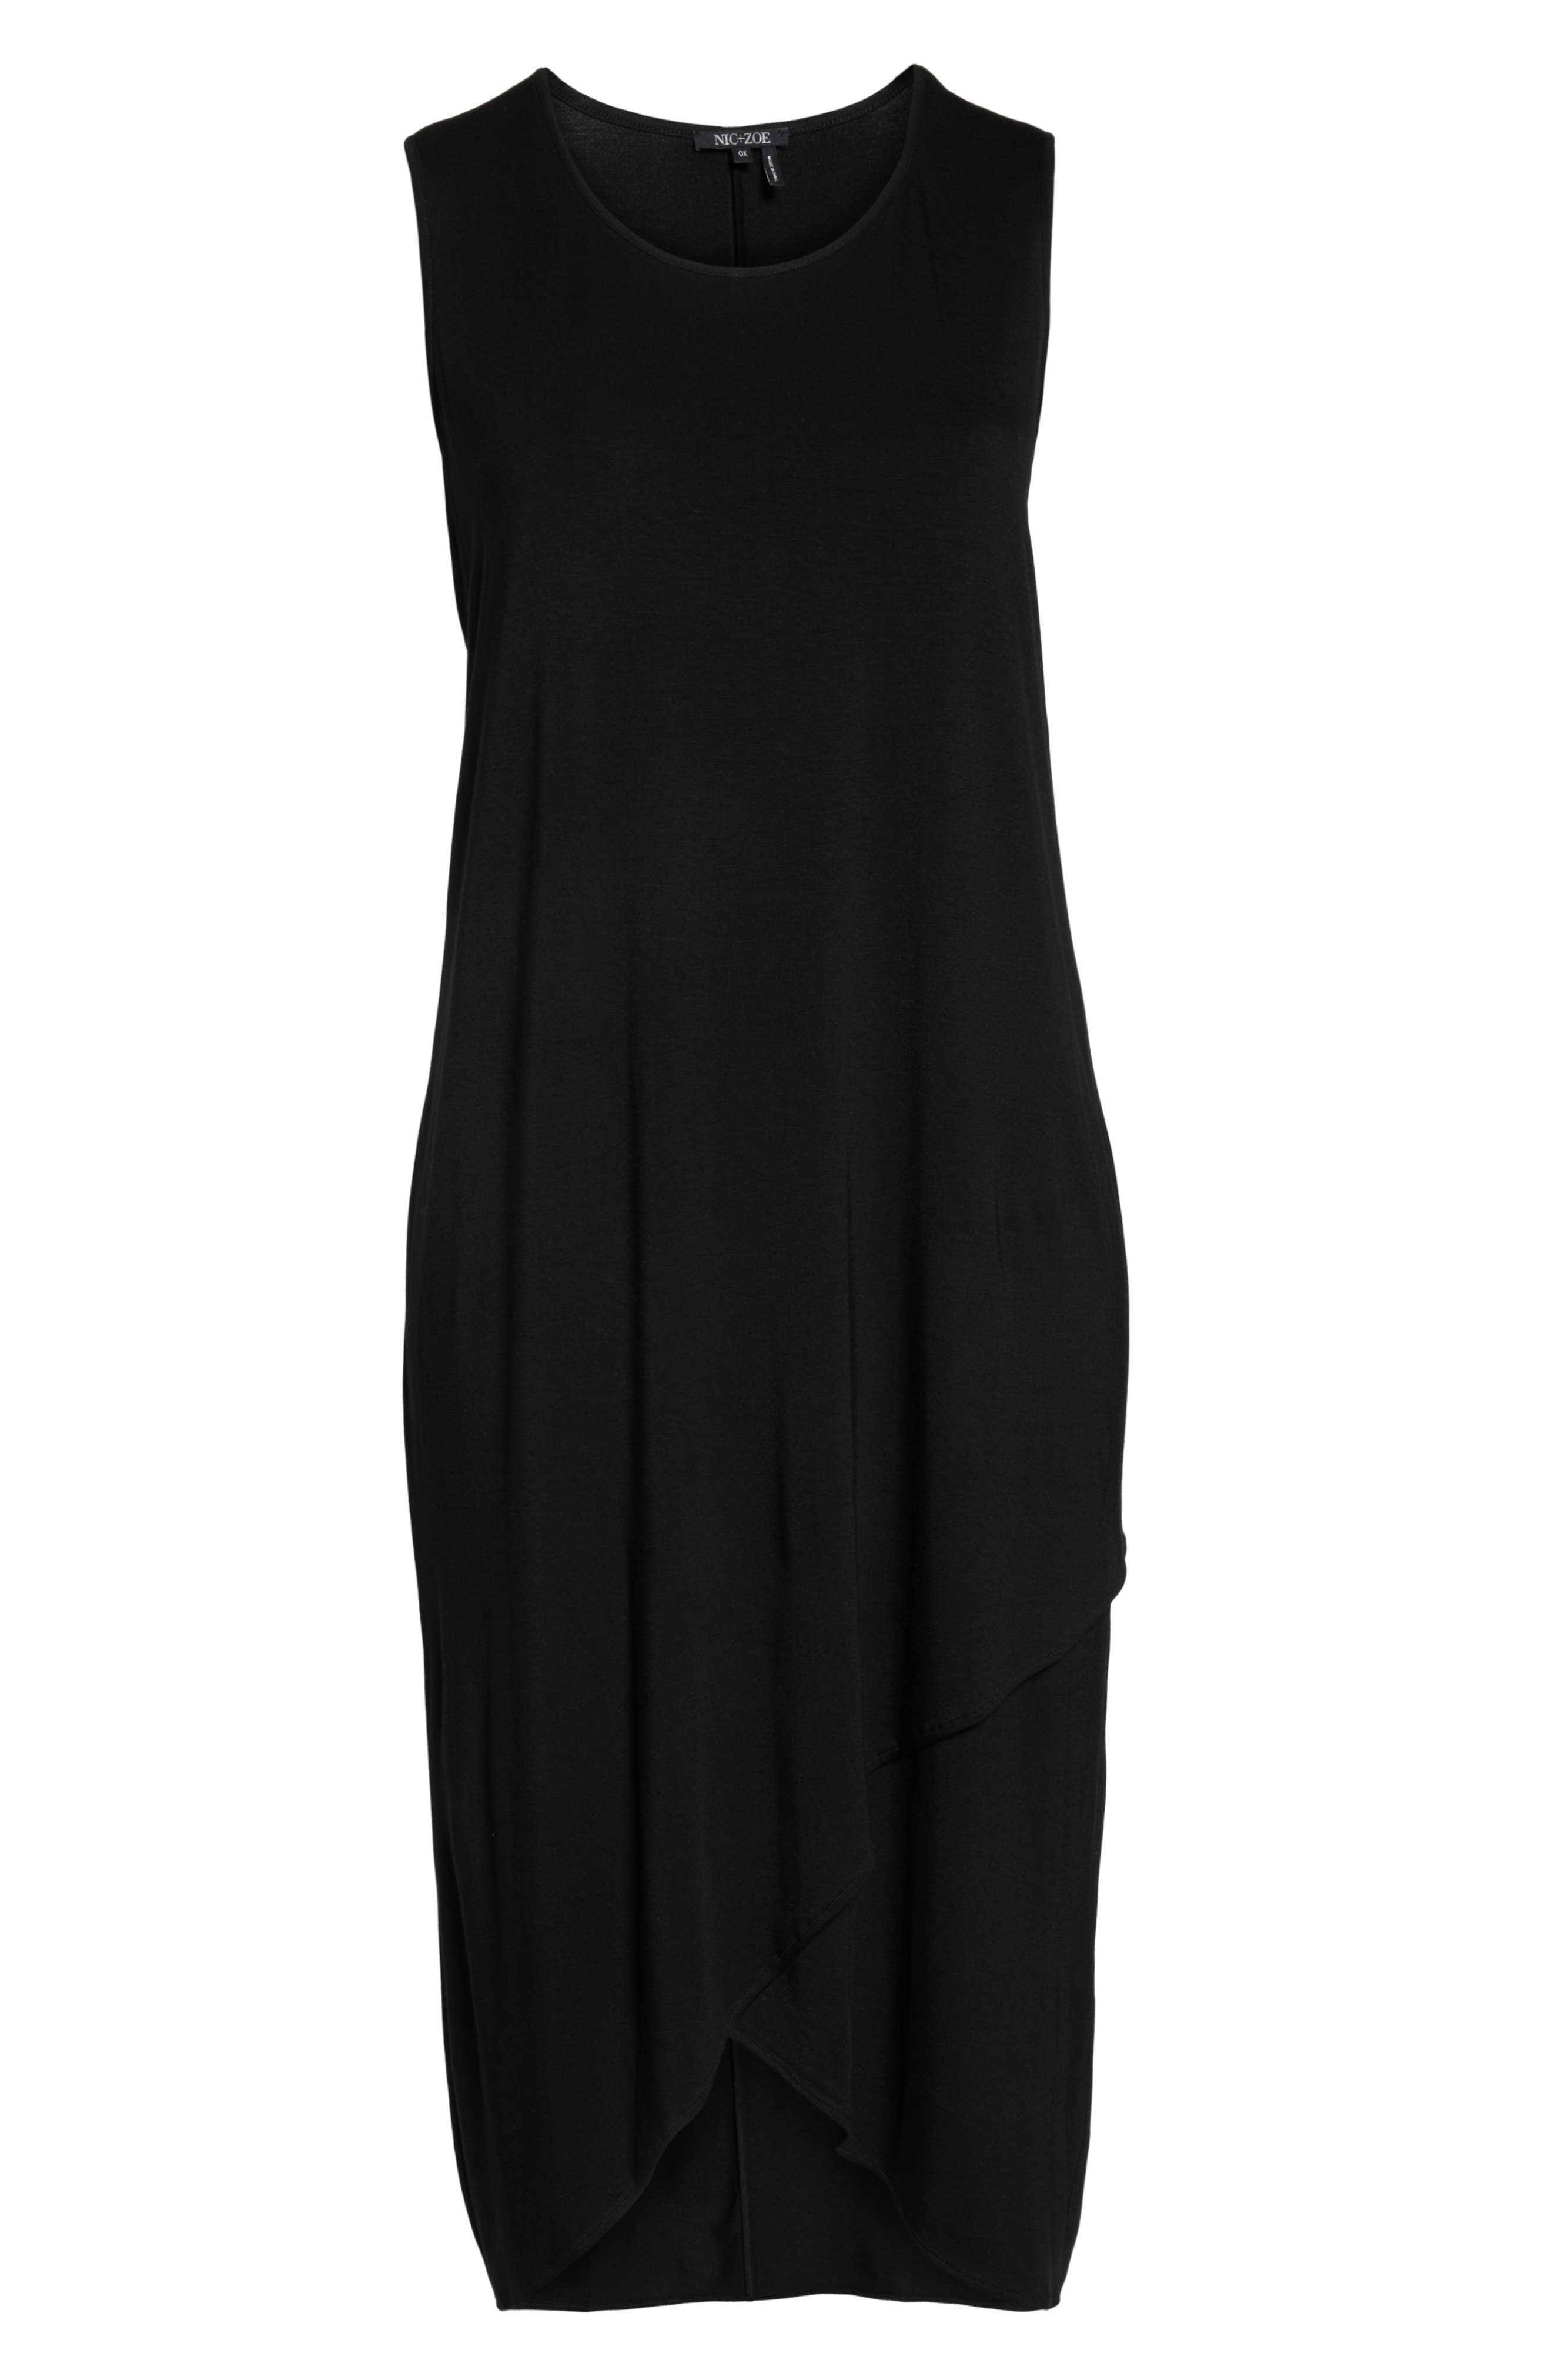 Ease Maxi Dress,                             Alternate thumbnail 7, color,                             BLACK ONYX